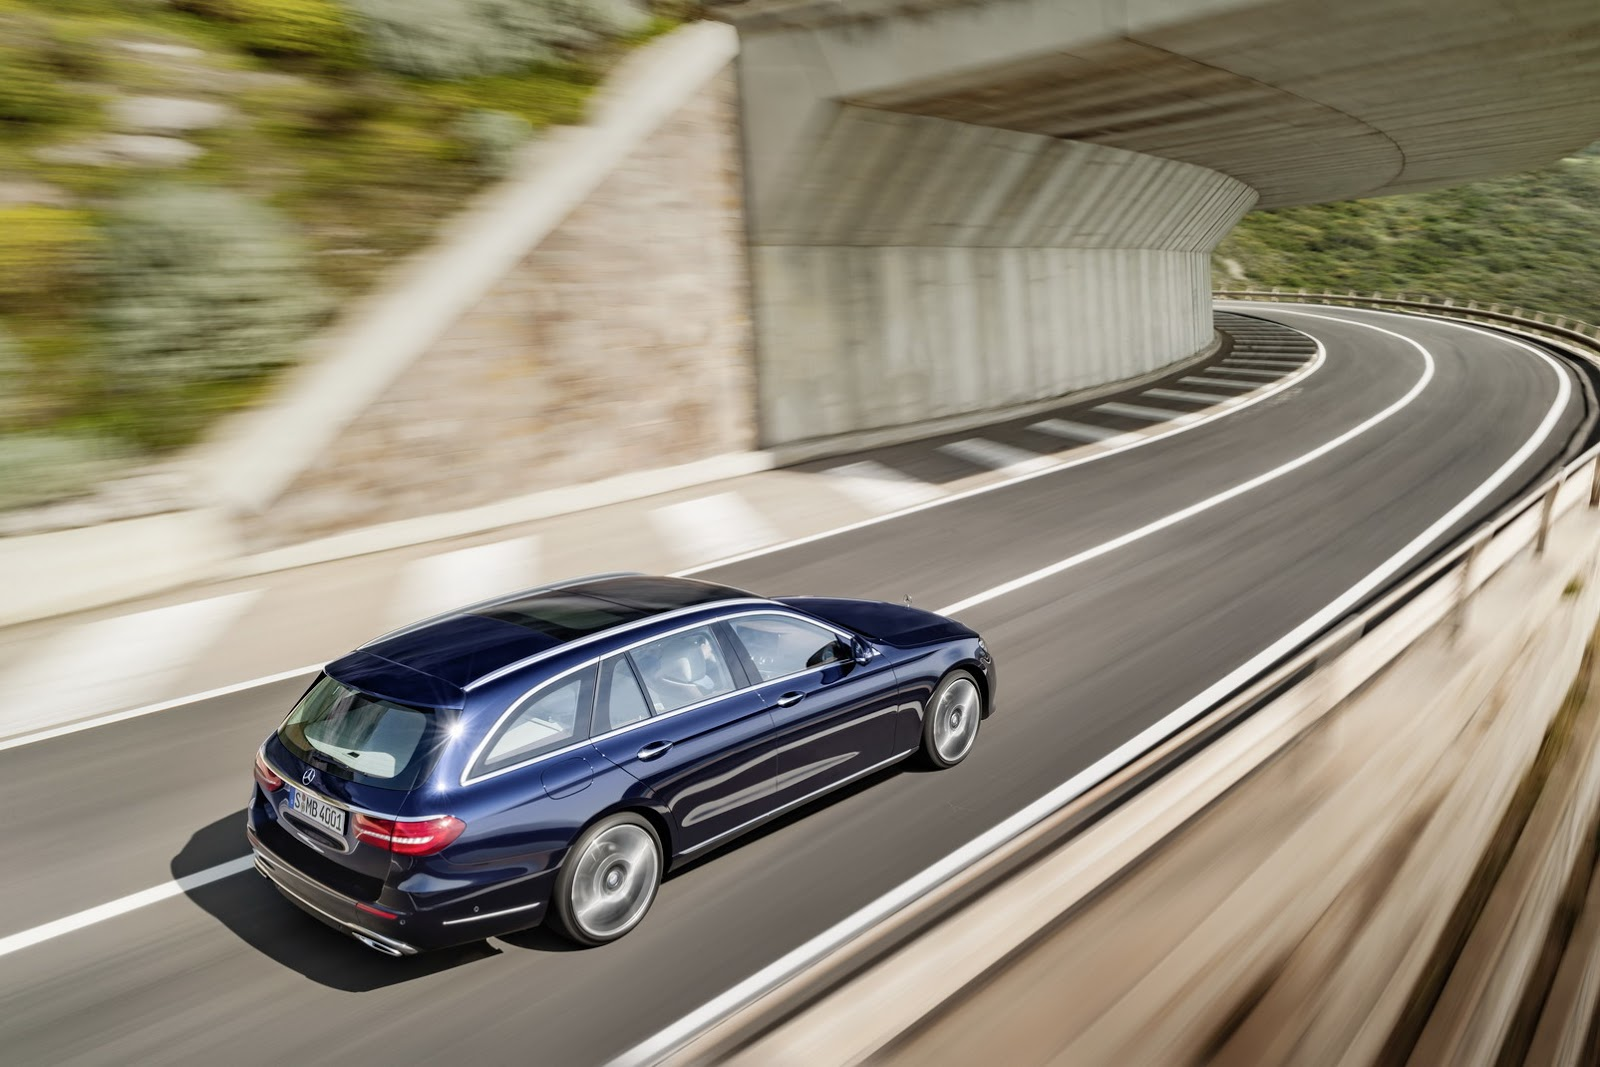 Mercedes classe e station wagon my 2017 9 87 for Mercedes benz station wagon 2017